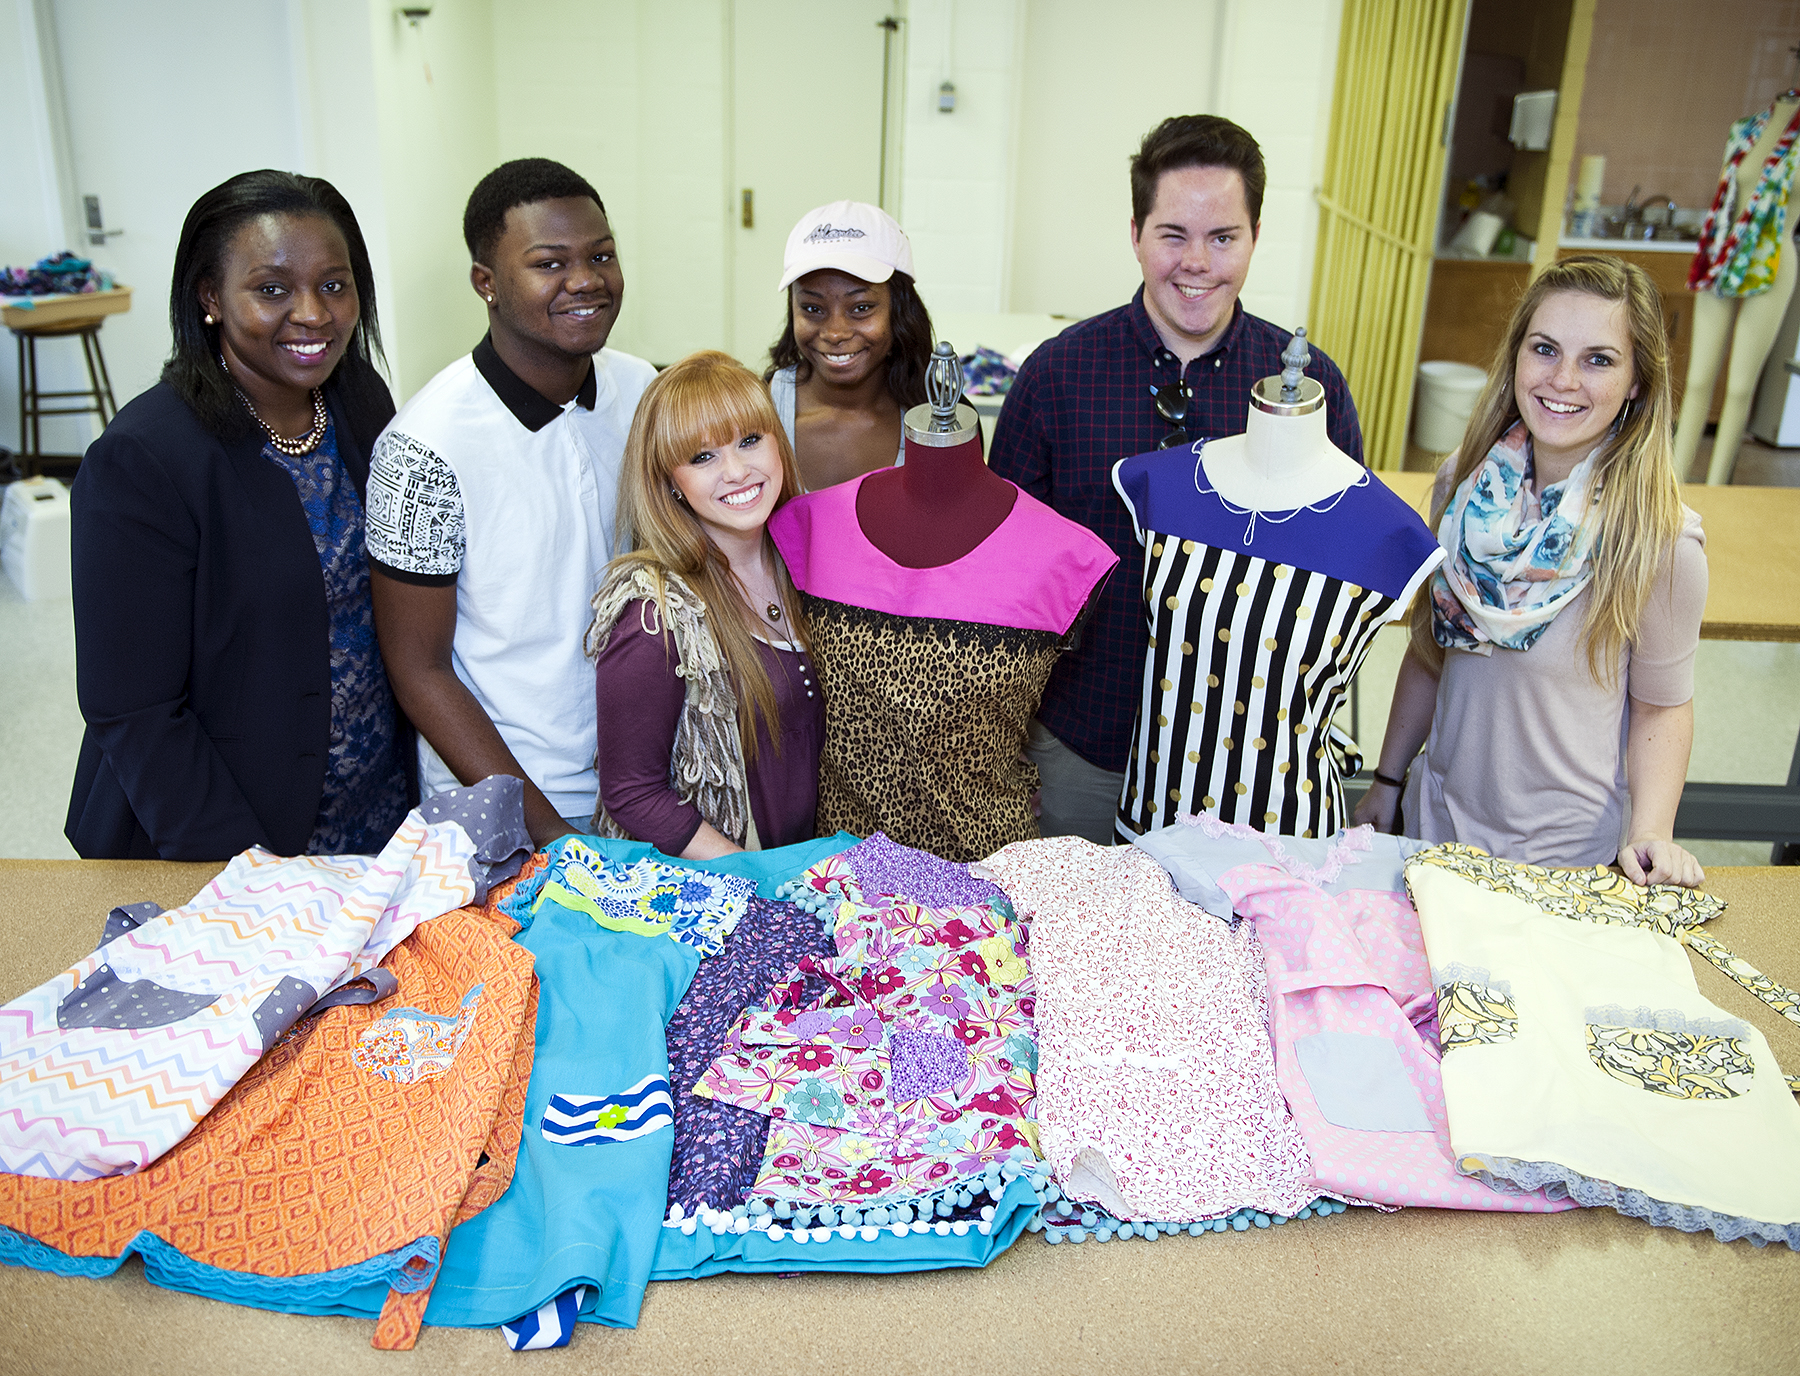 Apparel design instructor Caroline Kobia, (l-r) is pictured with some of her apparel design students who collaborated for Project Runway Kids, including De'Marquis Weaver of Greenwood, Katie Brown of Olive Branch, Octavia Lewis of Richland, Jesse Newton of Eupora, and Katja Walter of Germany.